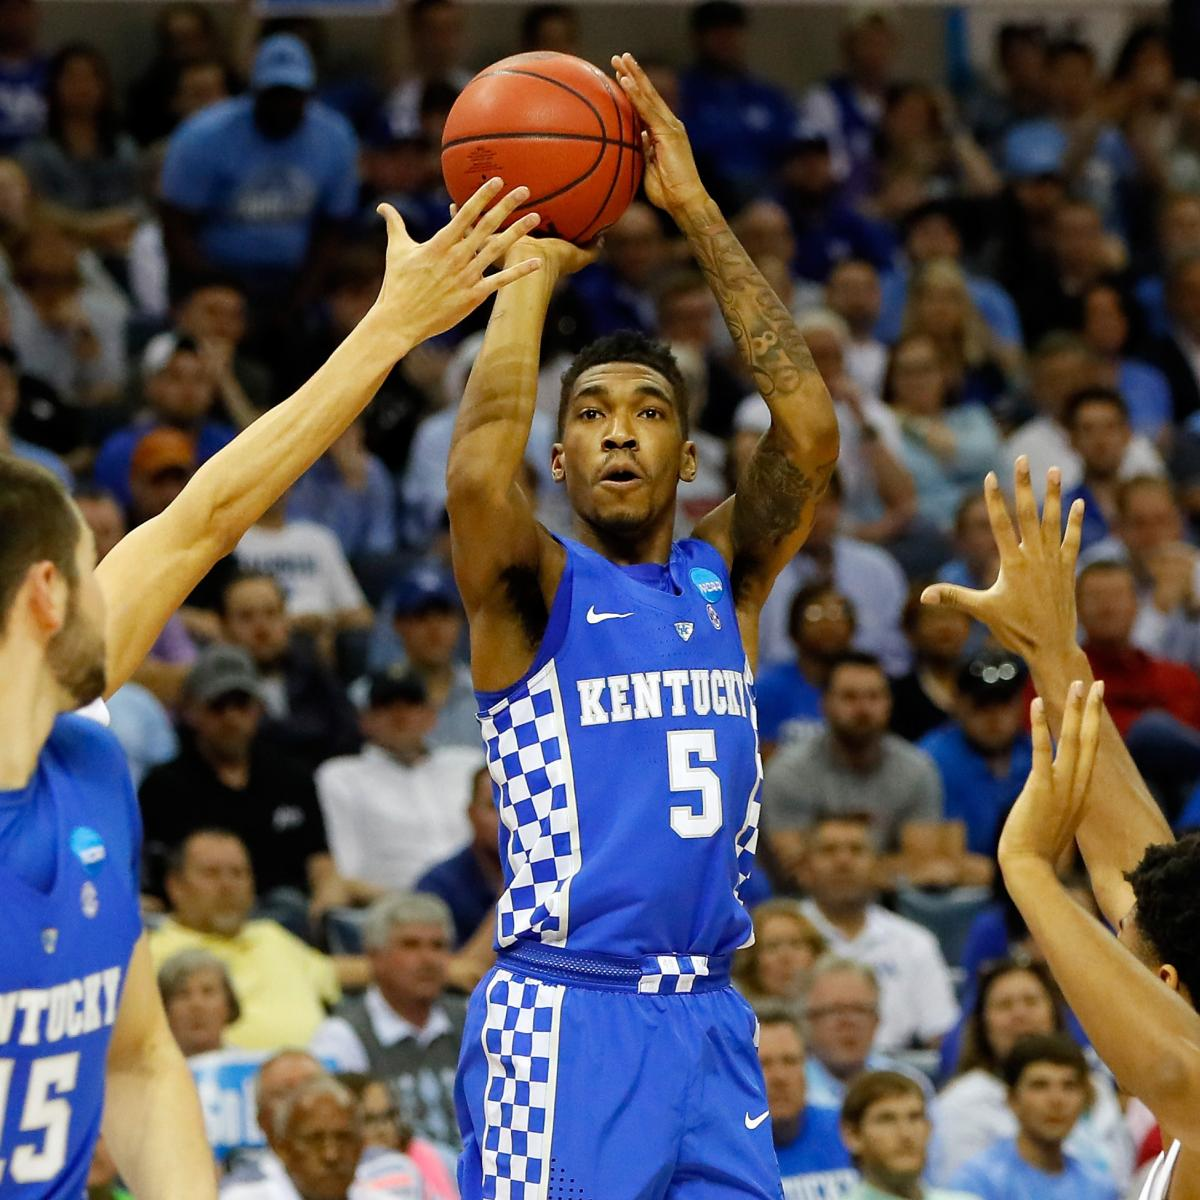 T Of C Alums 2017 Nba Draft: Malik Monk Slips To Hornets At No. 11 Overall In 2017 NBA